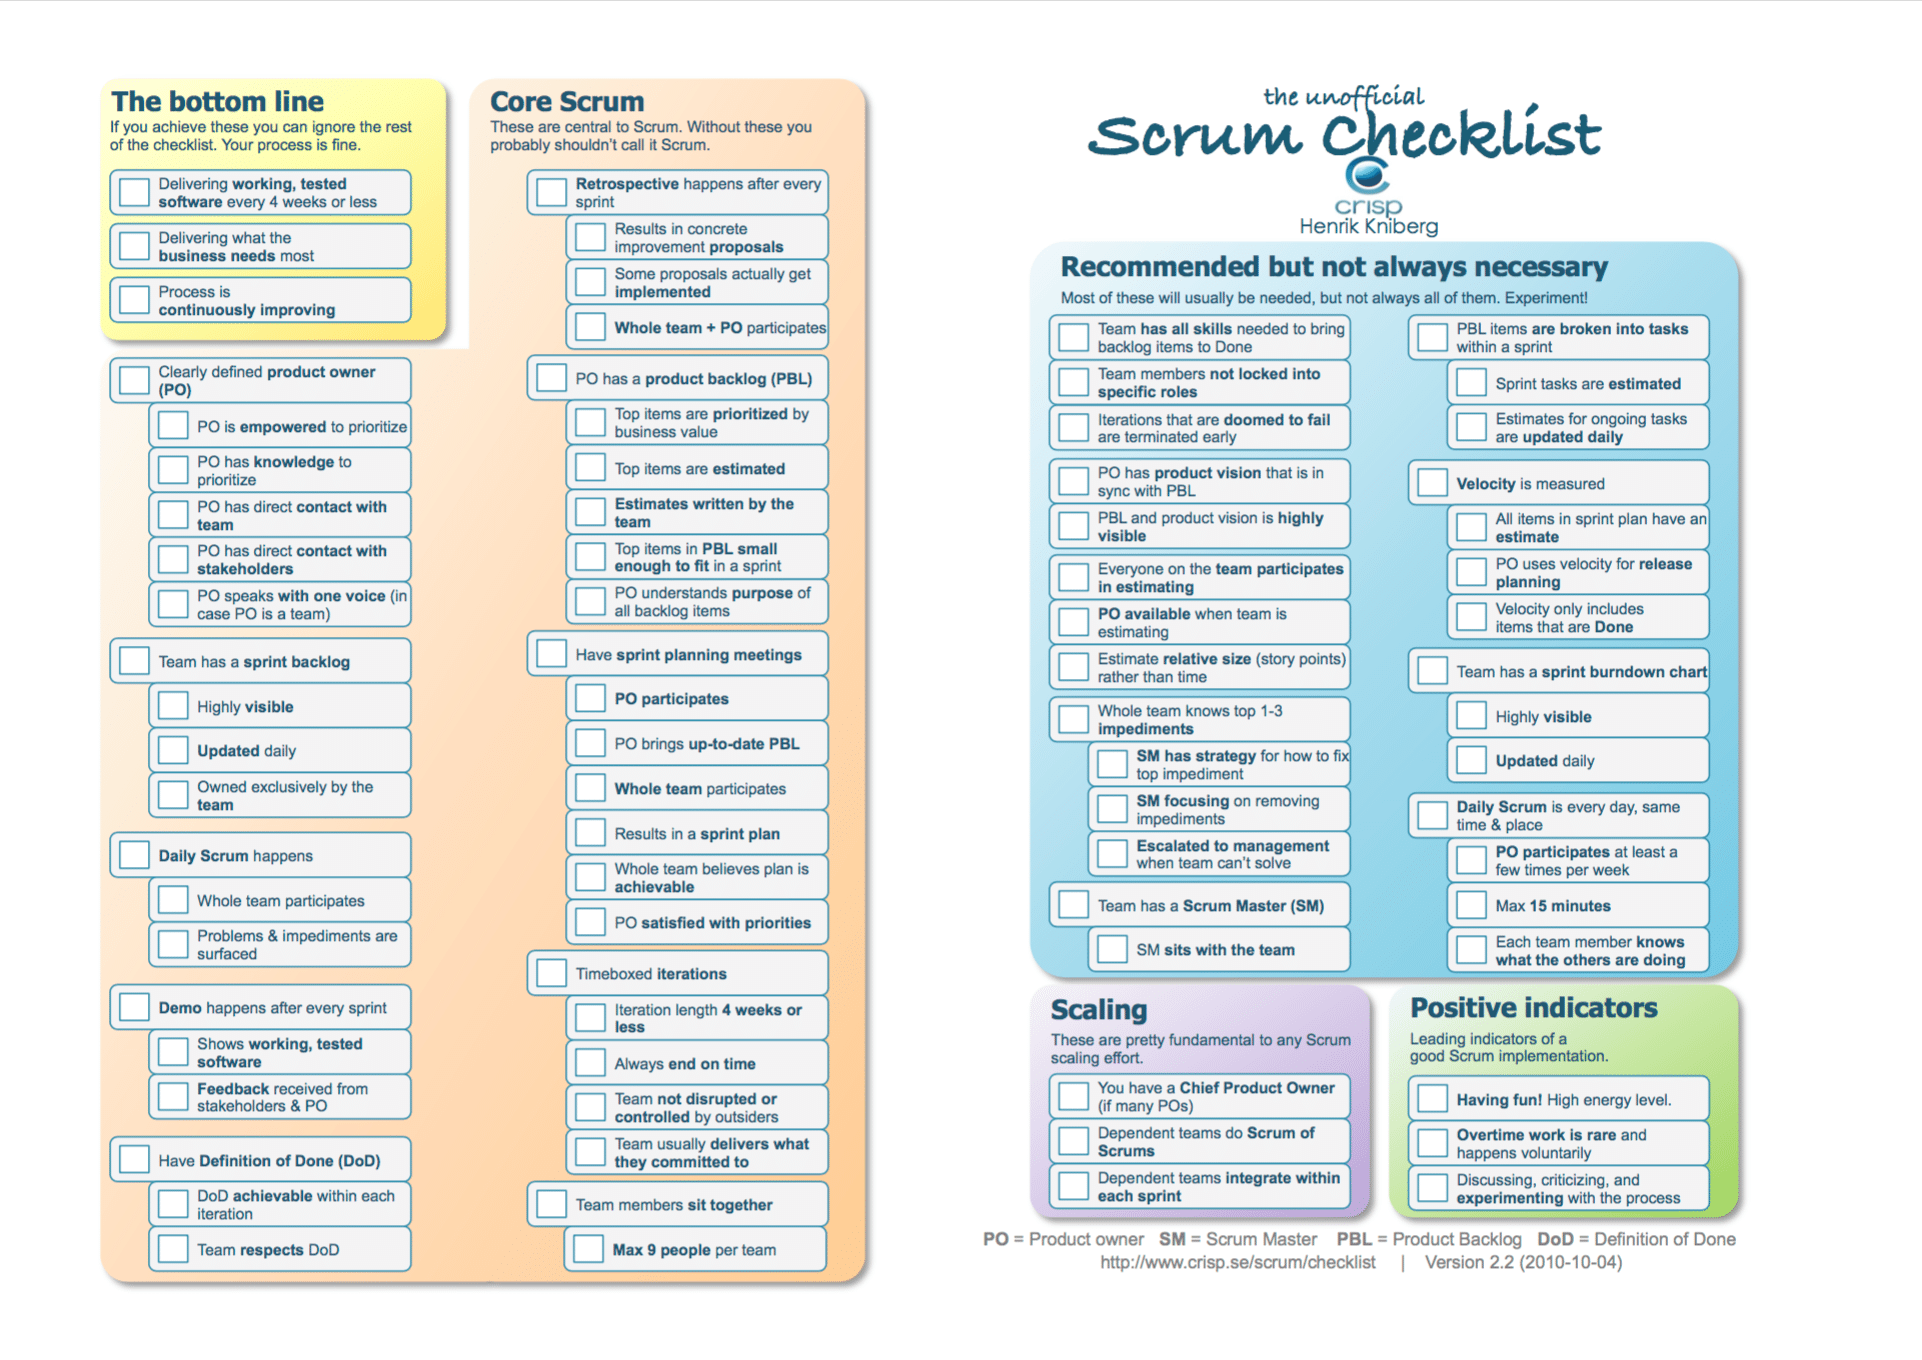 Unofficial Scrum Checklist by Henrik Kniberg